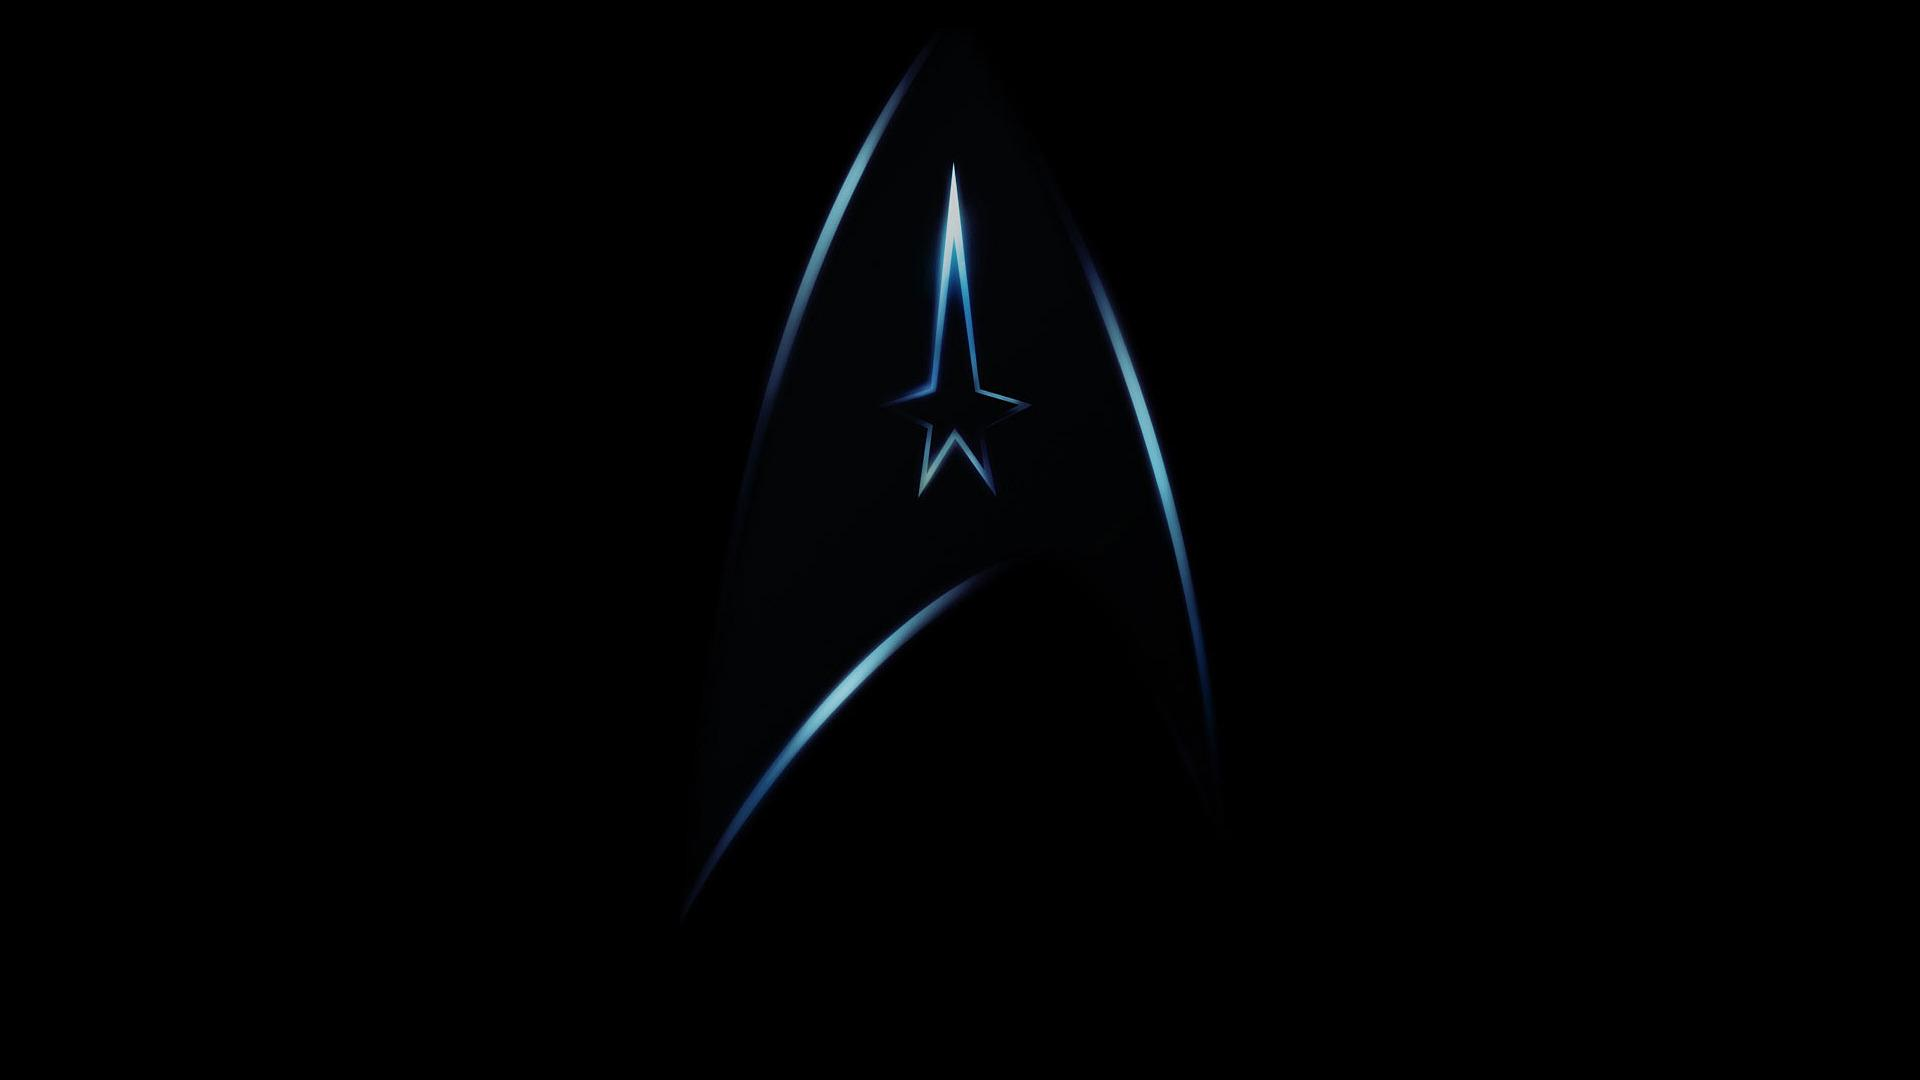 star trek wallpaper by - photo #26